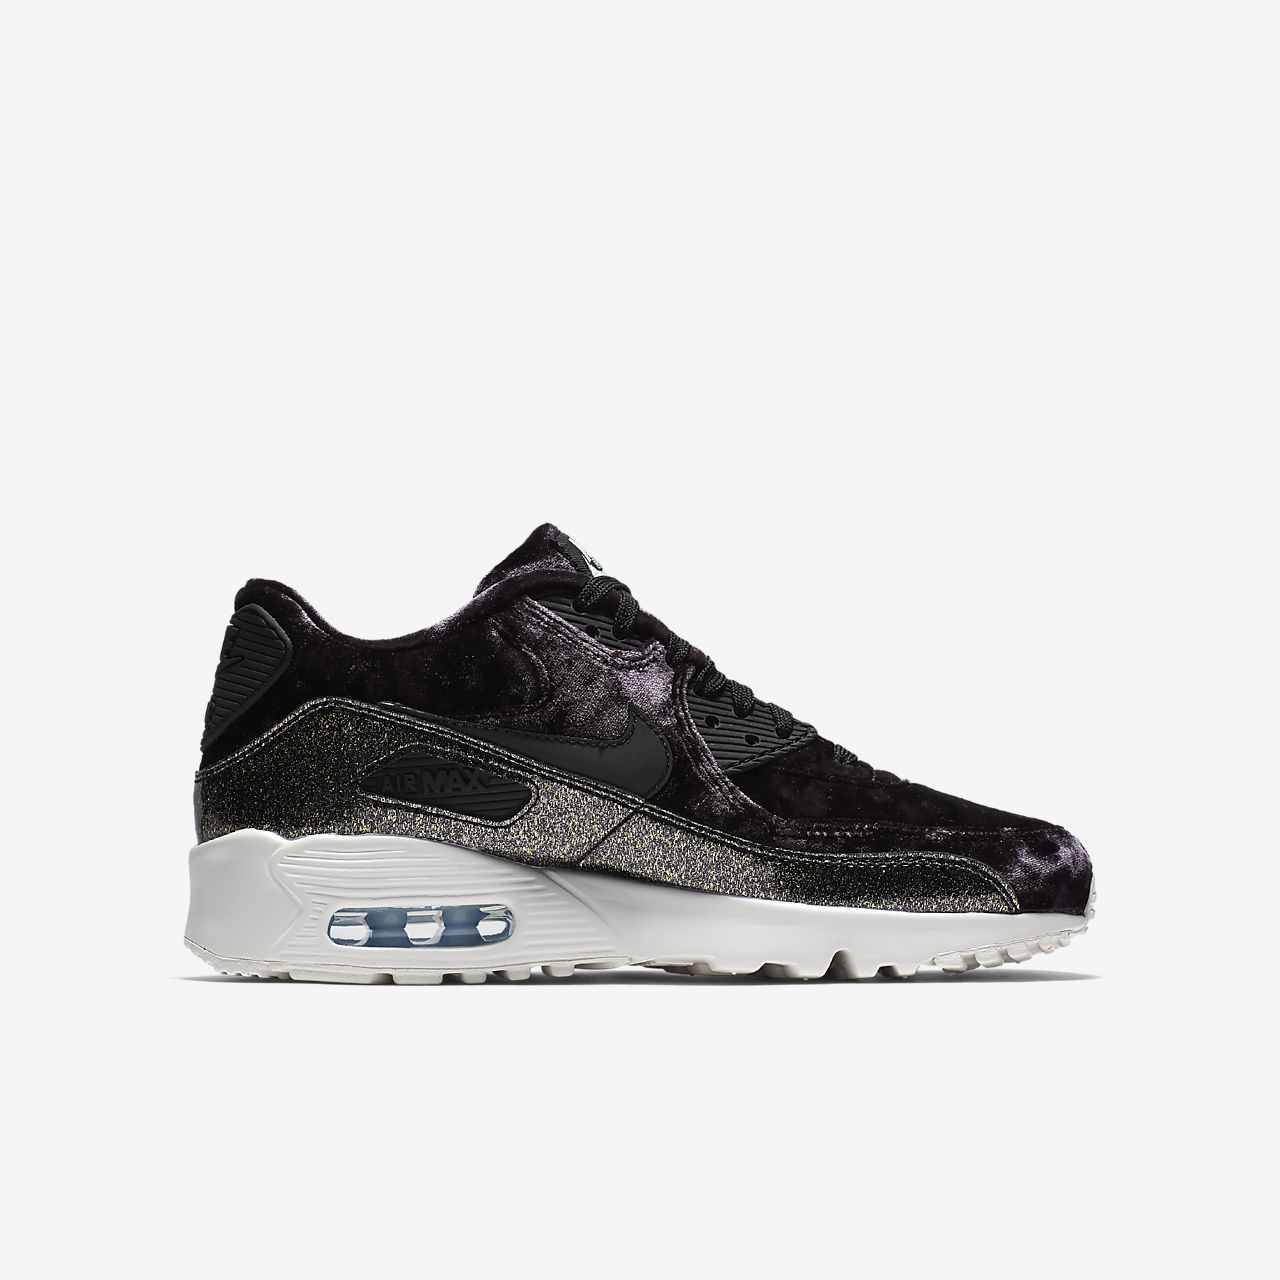 ... Nike Air Max 90 Pinnacle QS Big Kids' Shoe